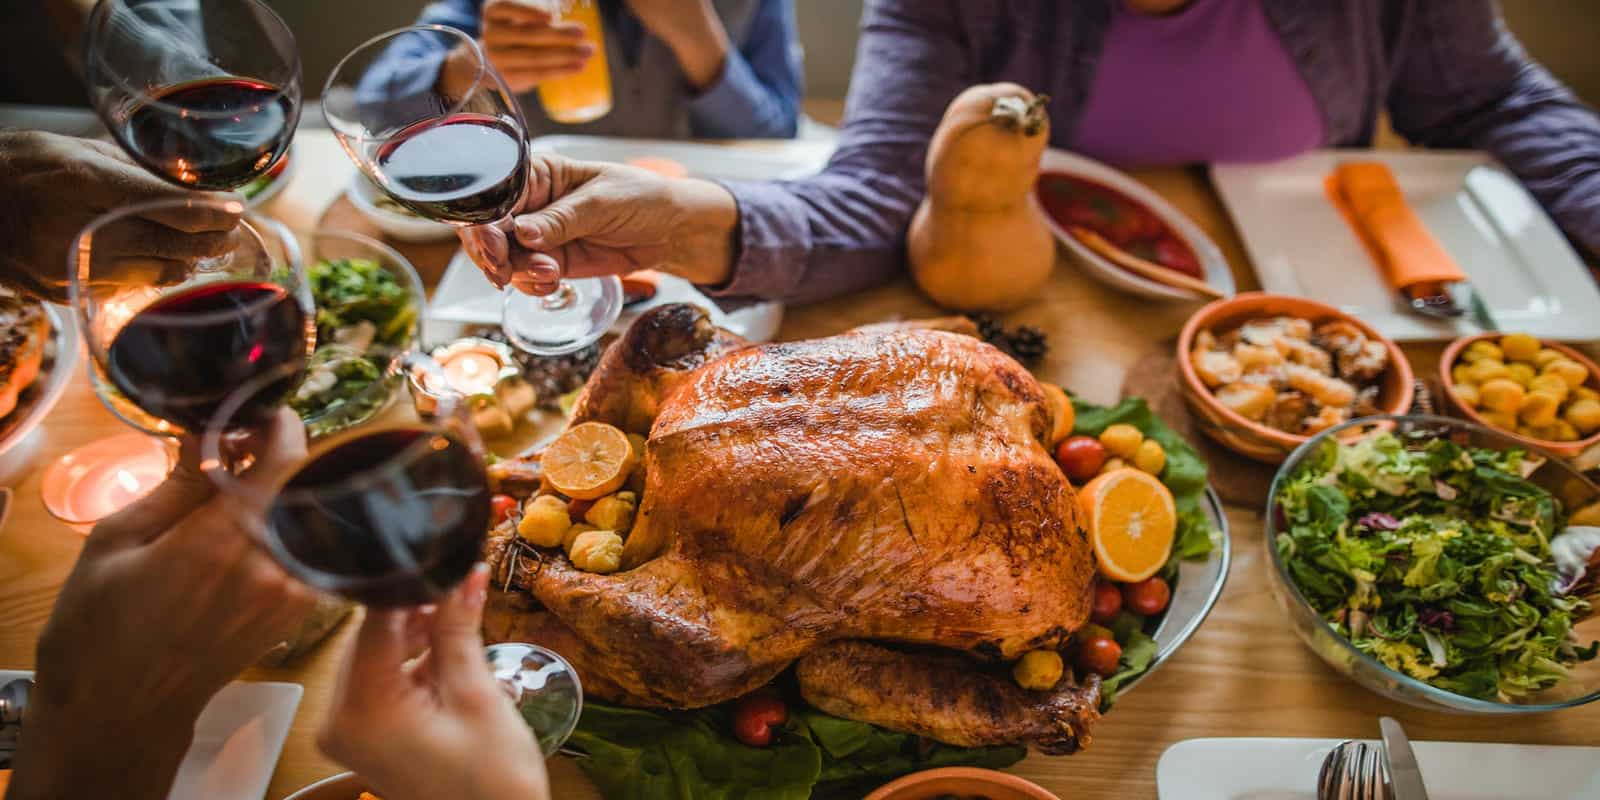 Thanksgiving Preparation In The Absence Of Loved Ones